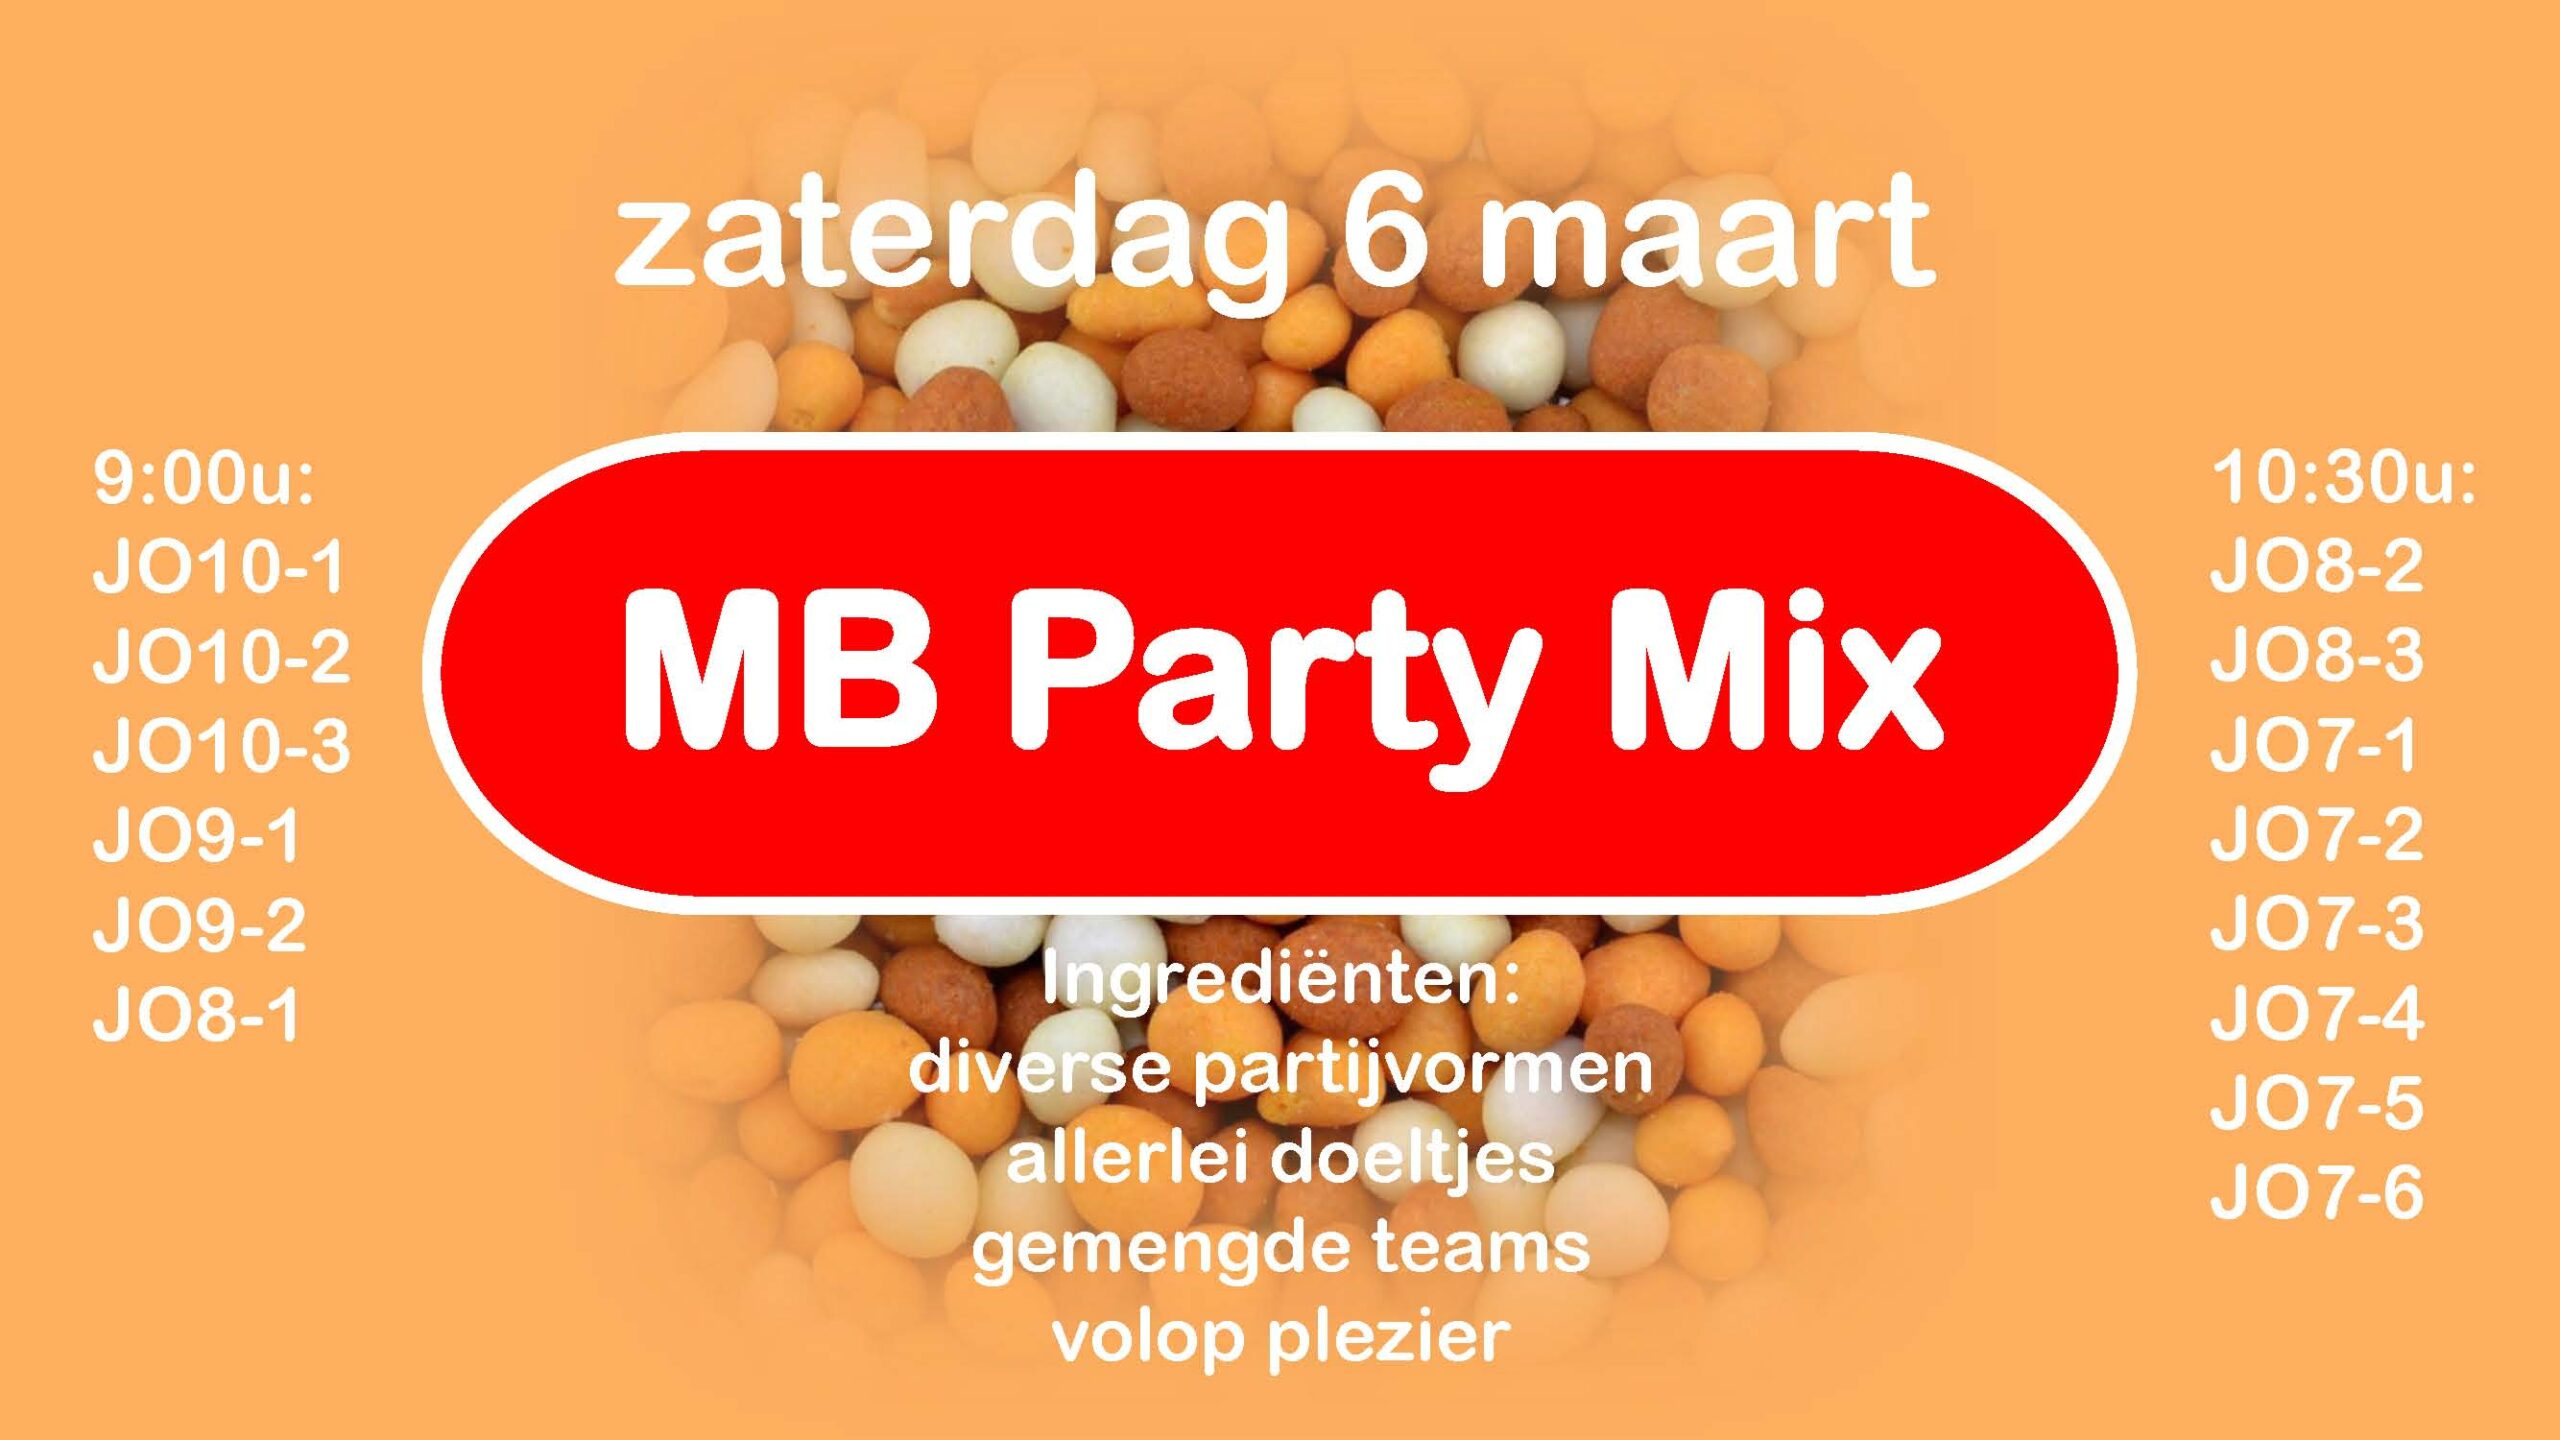 MB Party Mix